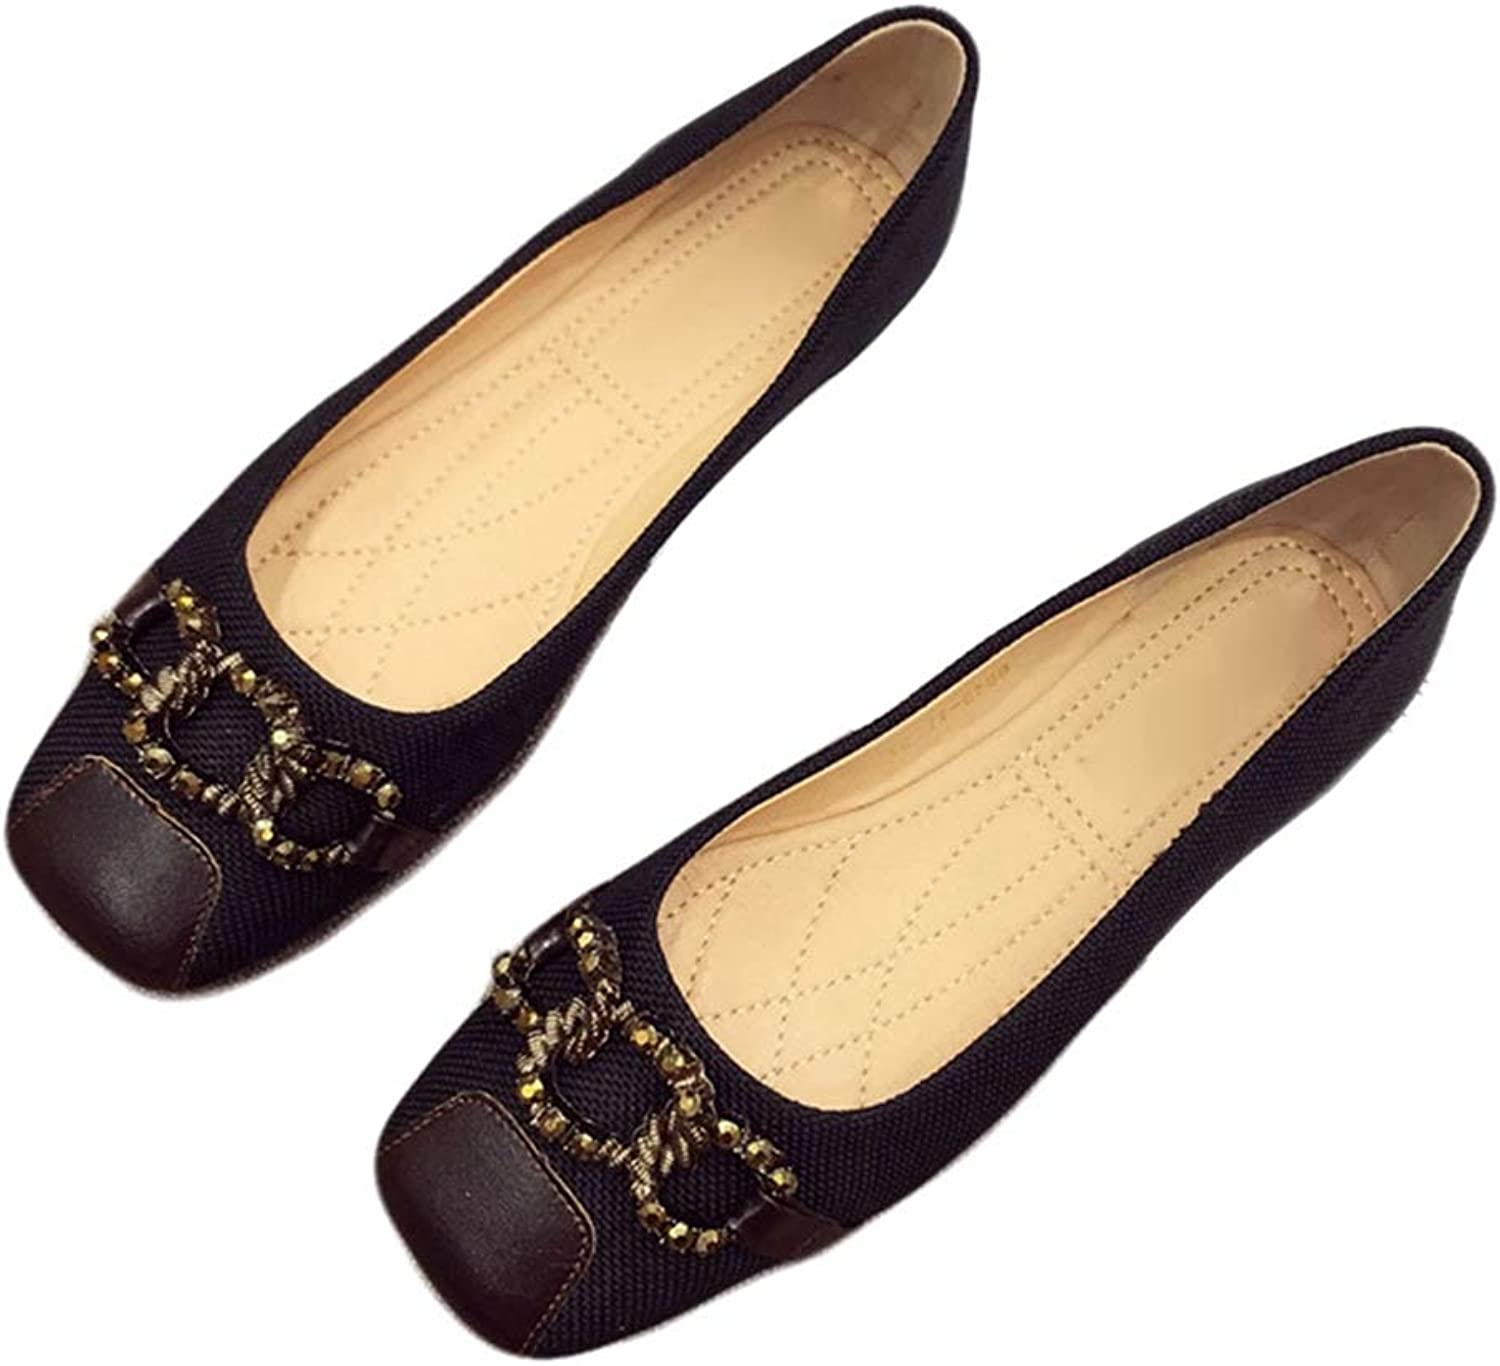 Phil Betty Women Flats shoes Square Toe Slip-On Ballet Low Heel Comfort Boat shoes